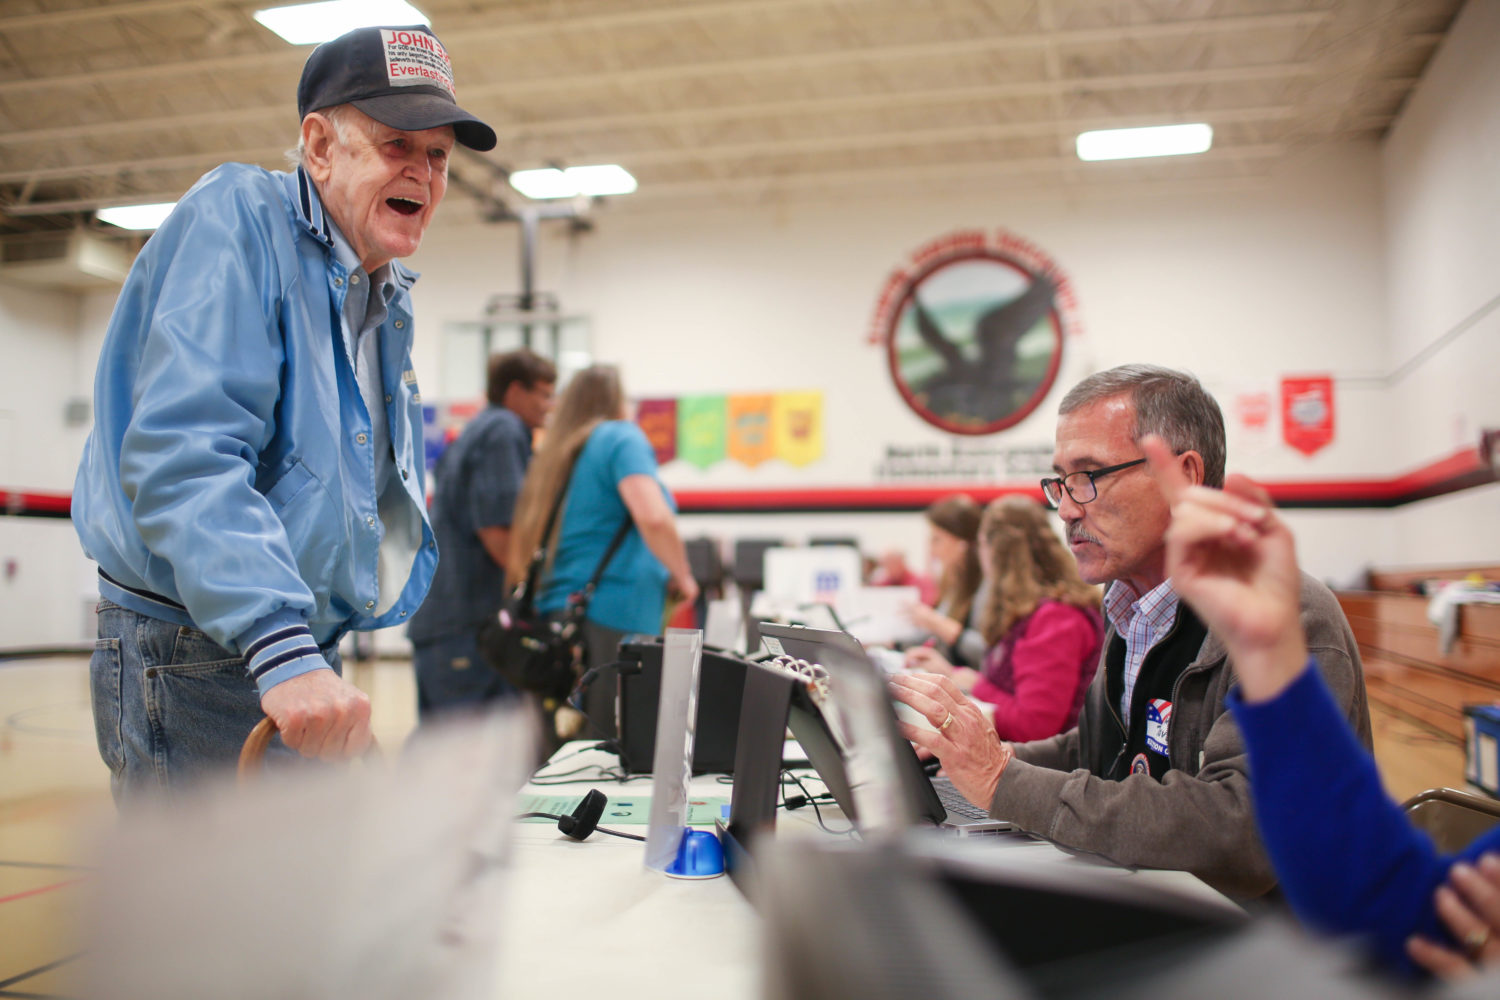 Joseph Brown laughs with election workers as he signs in to vote at North Buncombe Elementary School in Weaverville on Tuesday in 2016. Colby Rabon / Carolina Public Press